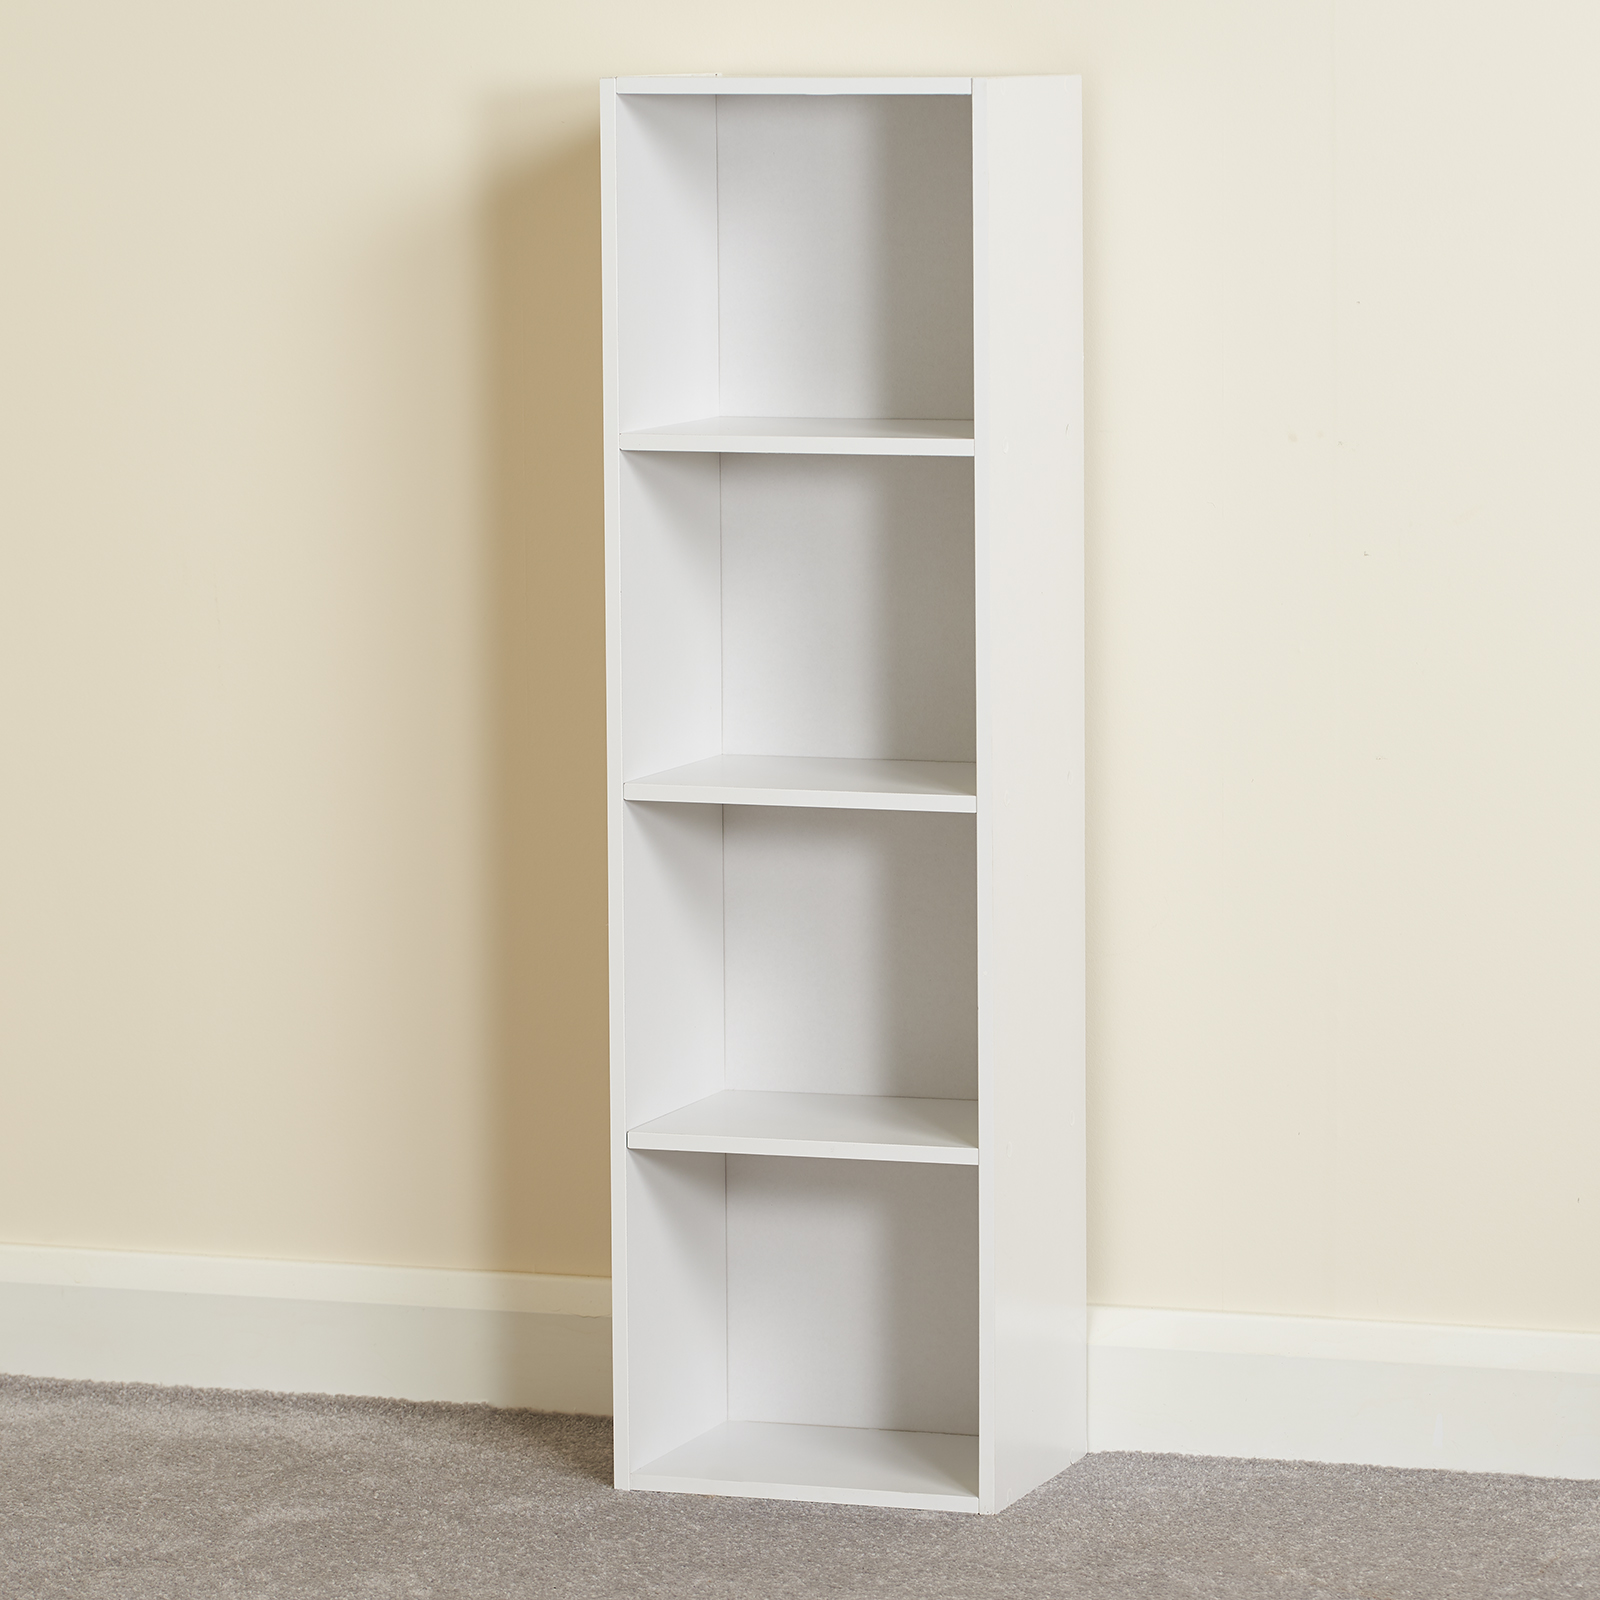 Hartleys-4-Tier-White-Bookcase-Wooden-Display-Shelving-Unit-amp-Fabric-Storage-Box thumbnail 17